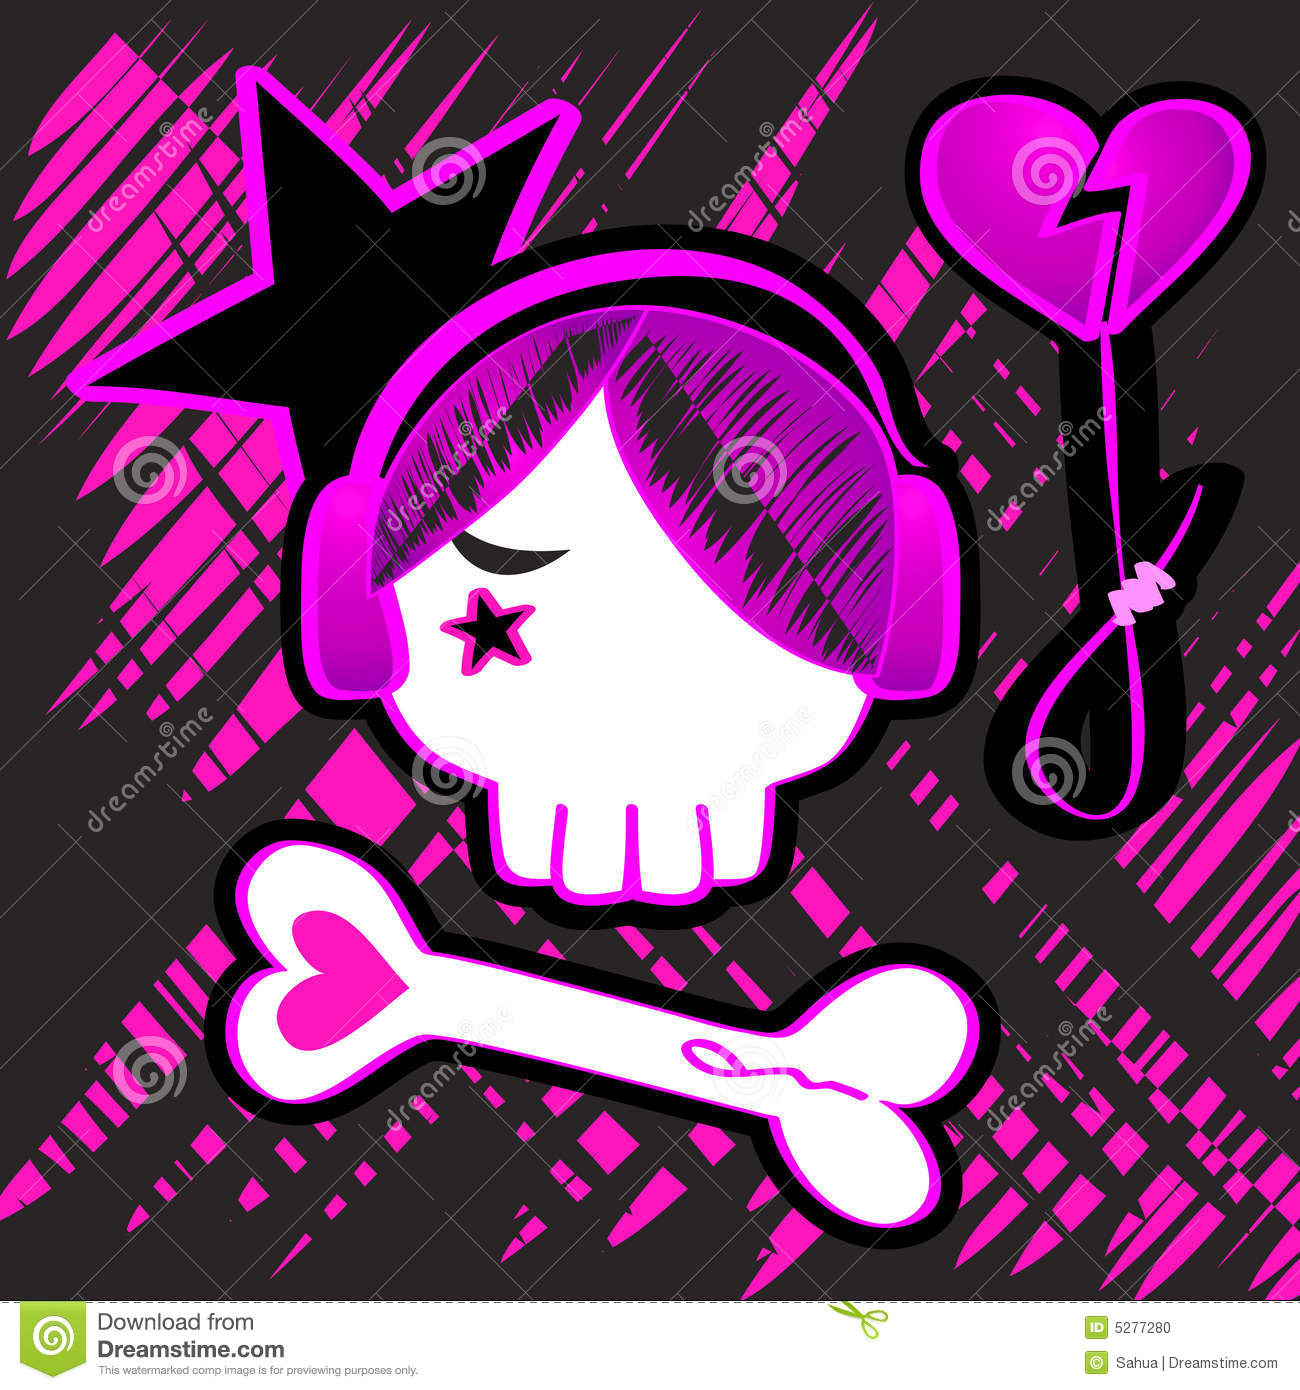 Emo Girl Wallpaper Free Download Emo Skull Art Stock Vector Image Of Black Pattern Death